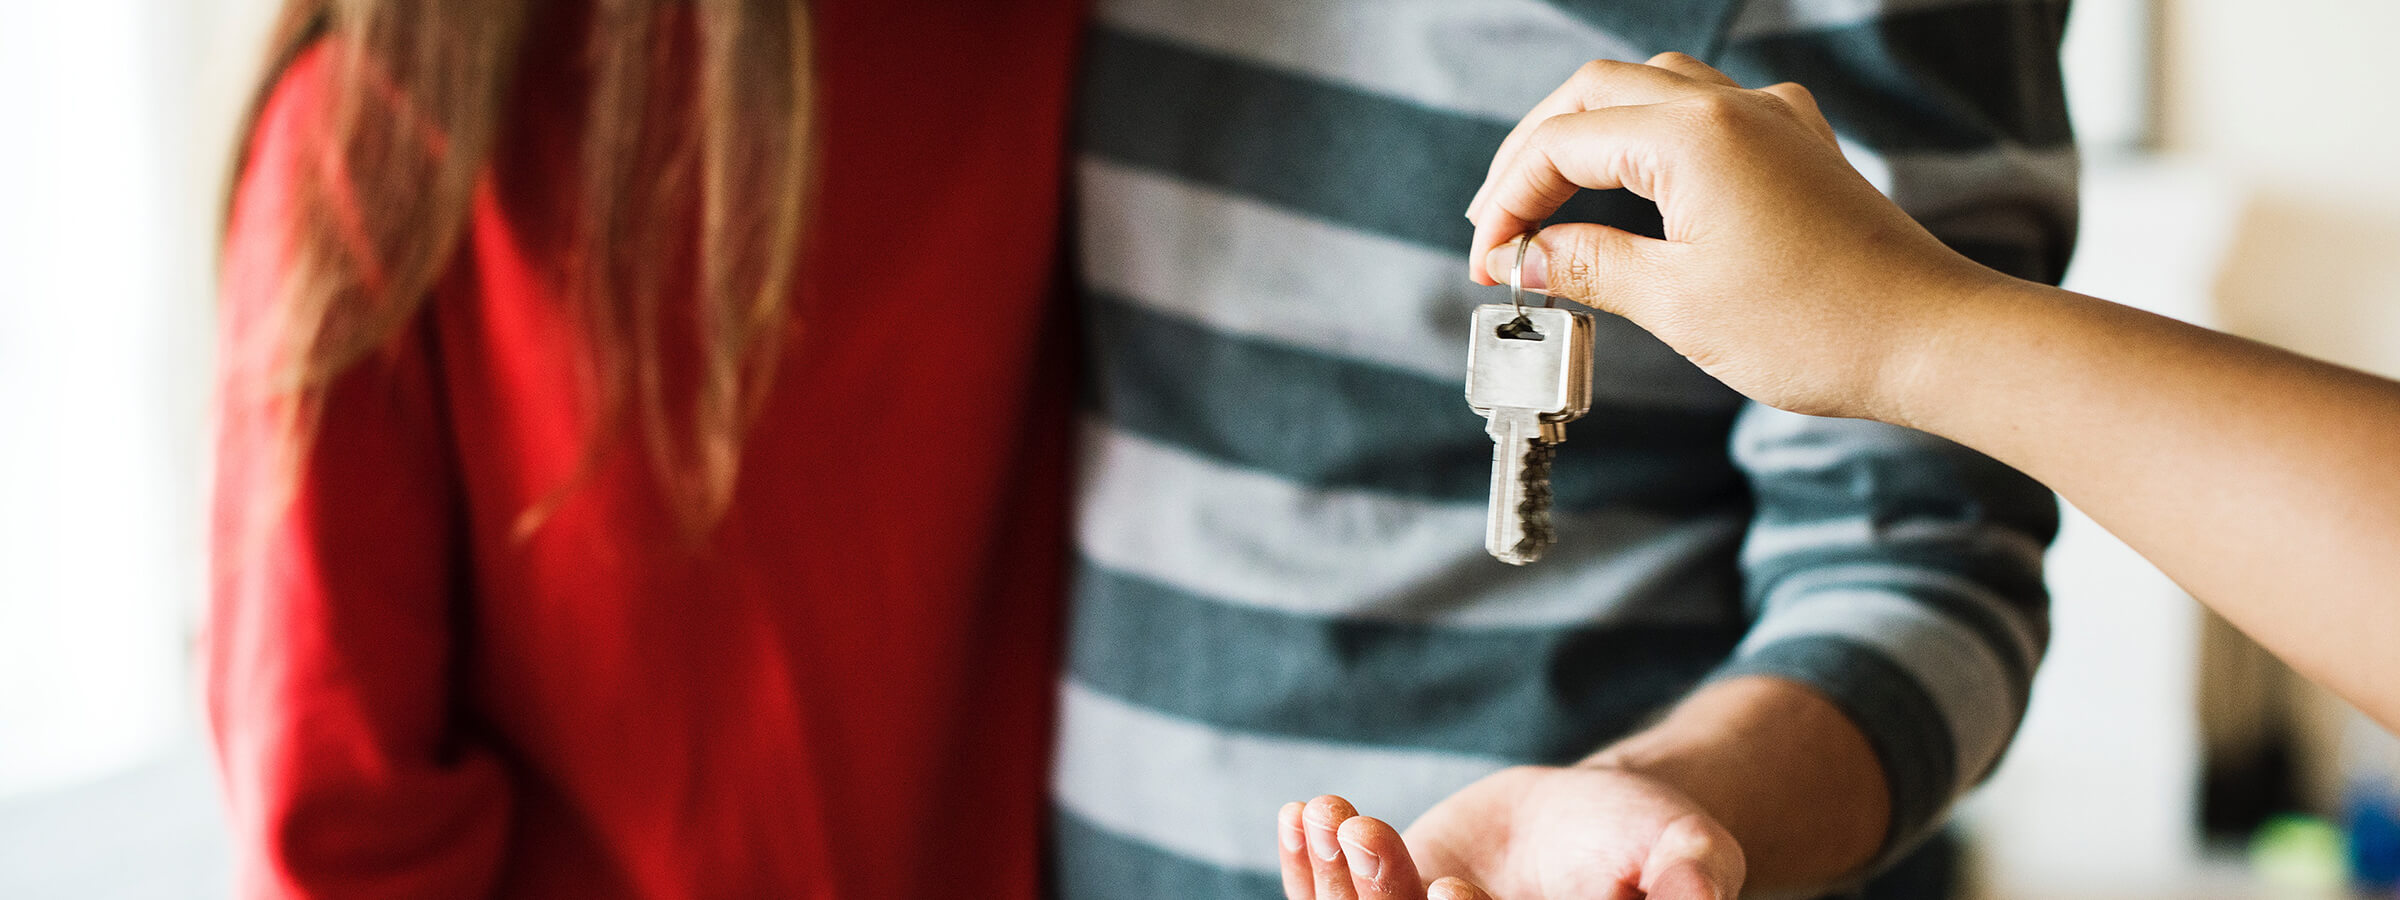 Badu-Capital-For-House-And-Land-Purchasers-Couple-Being-Handed-Keys